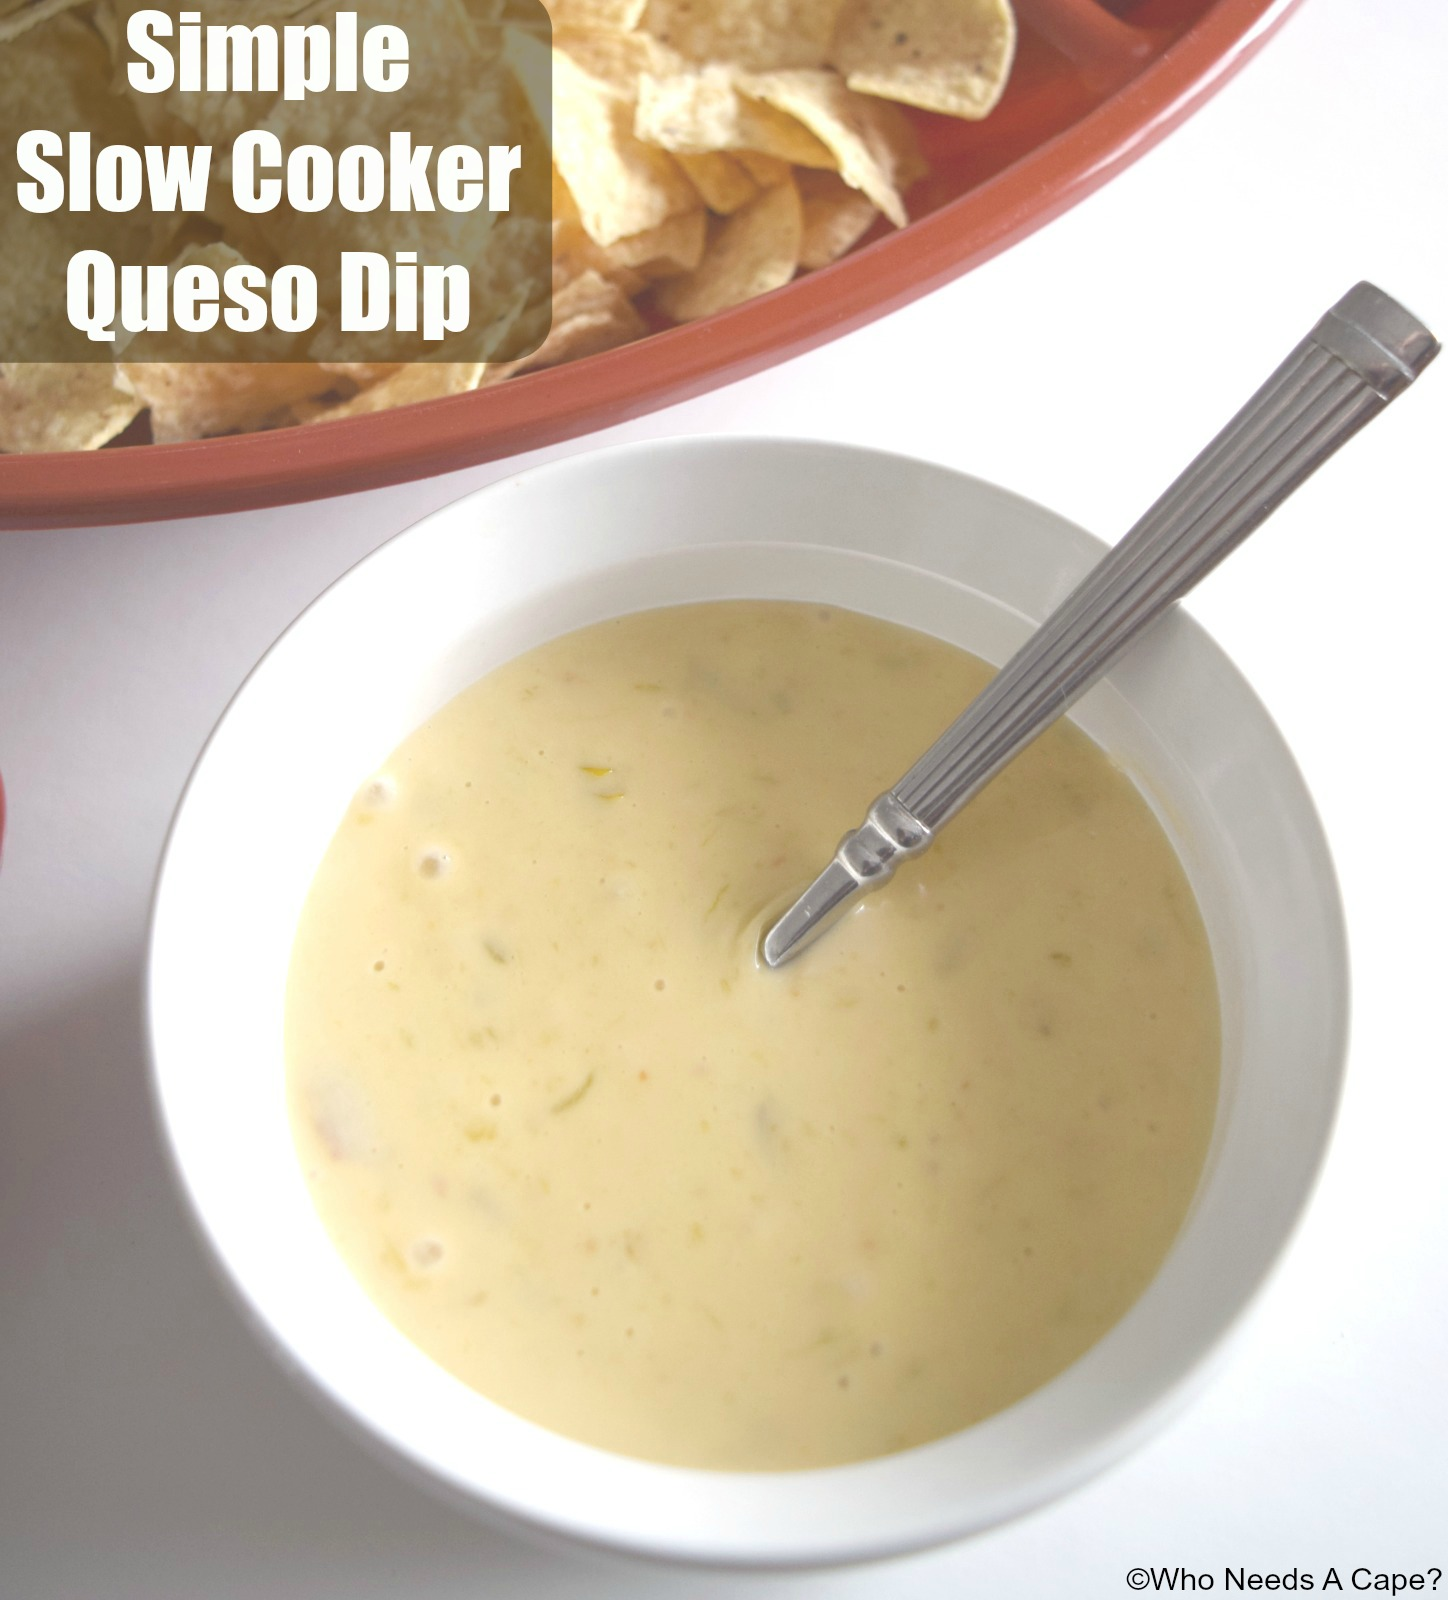 Ad Simple Slow Cooker Queso Dip - Who Needs A Cape?